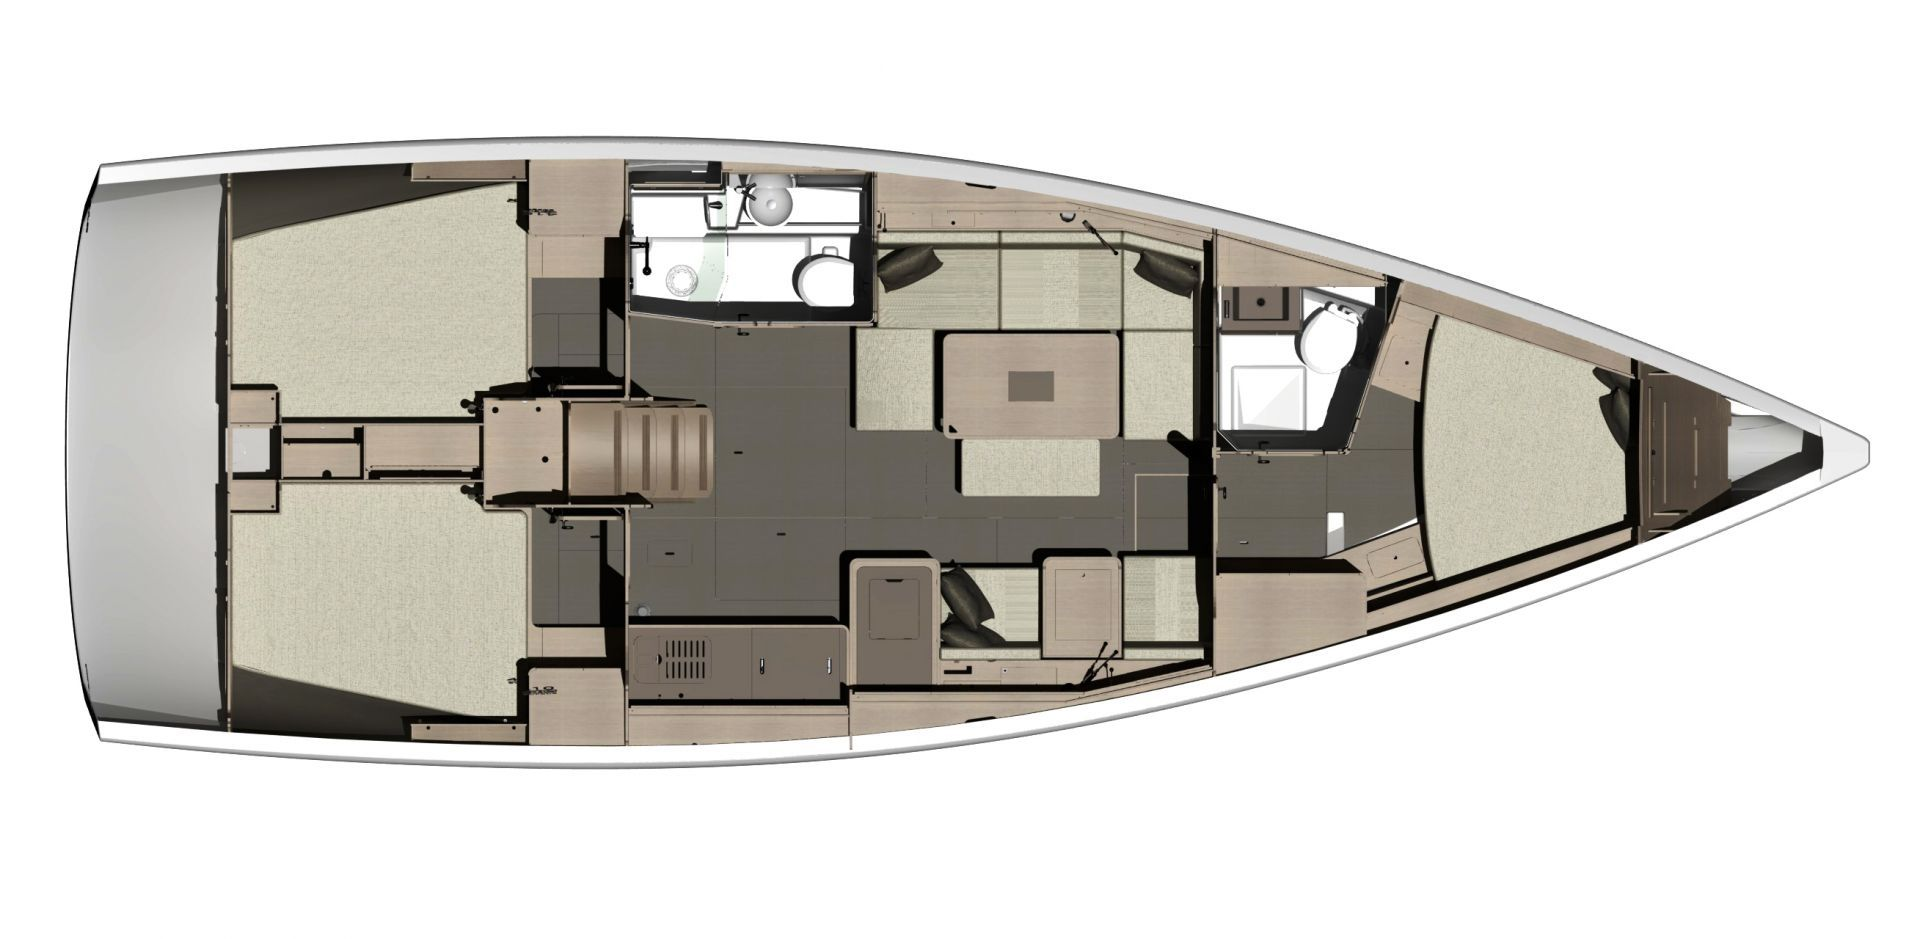 Dufour 412 Layout